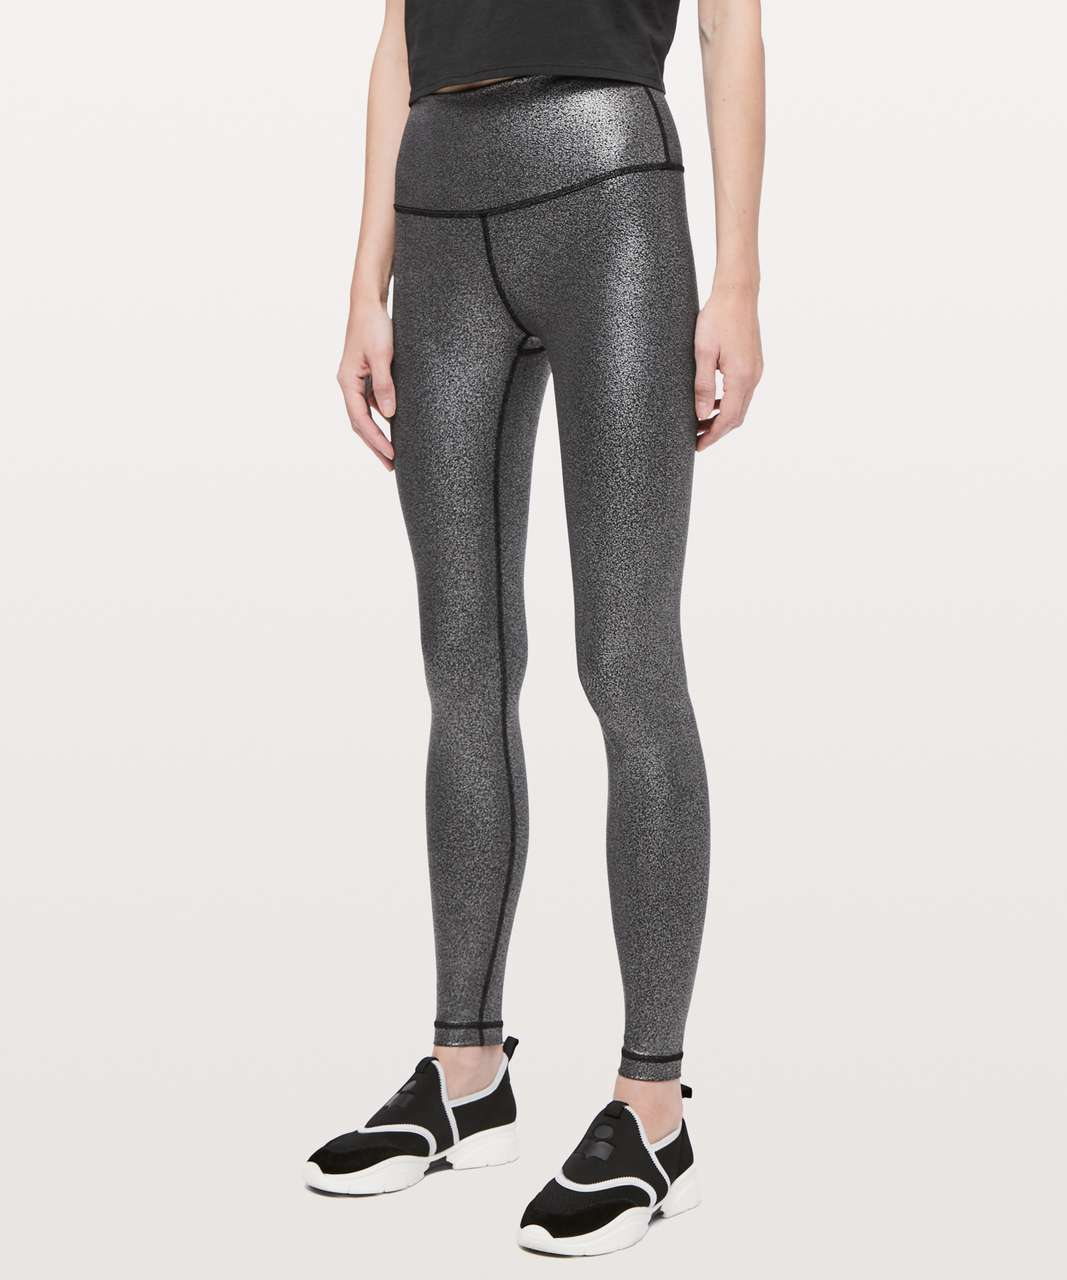 c7088b0e56 Lululemon Wunder Under High-Rise Tight *Foil 28